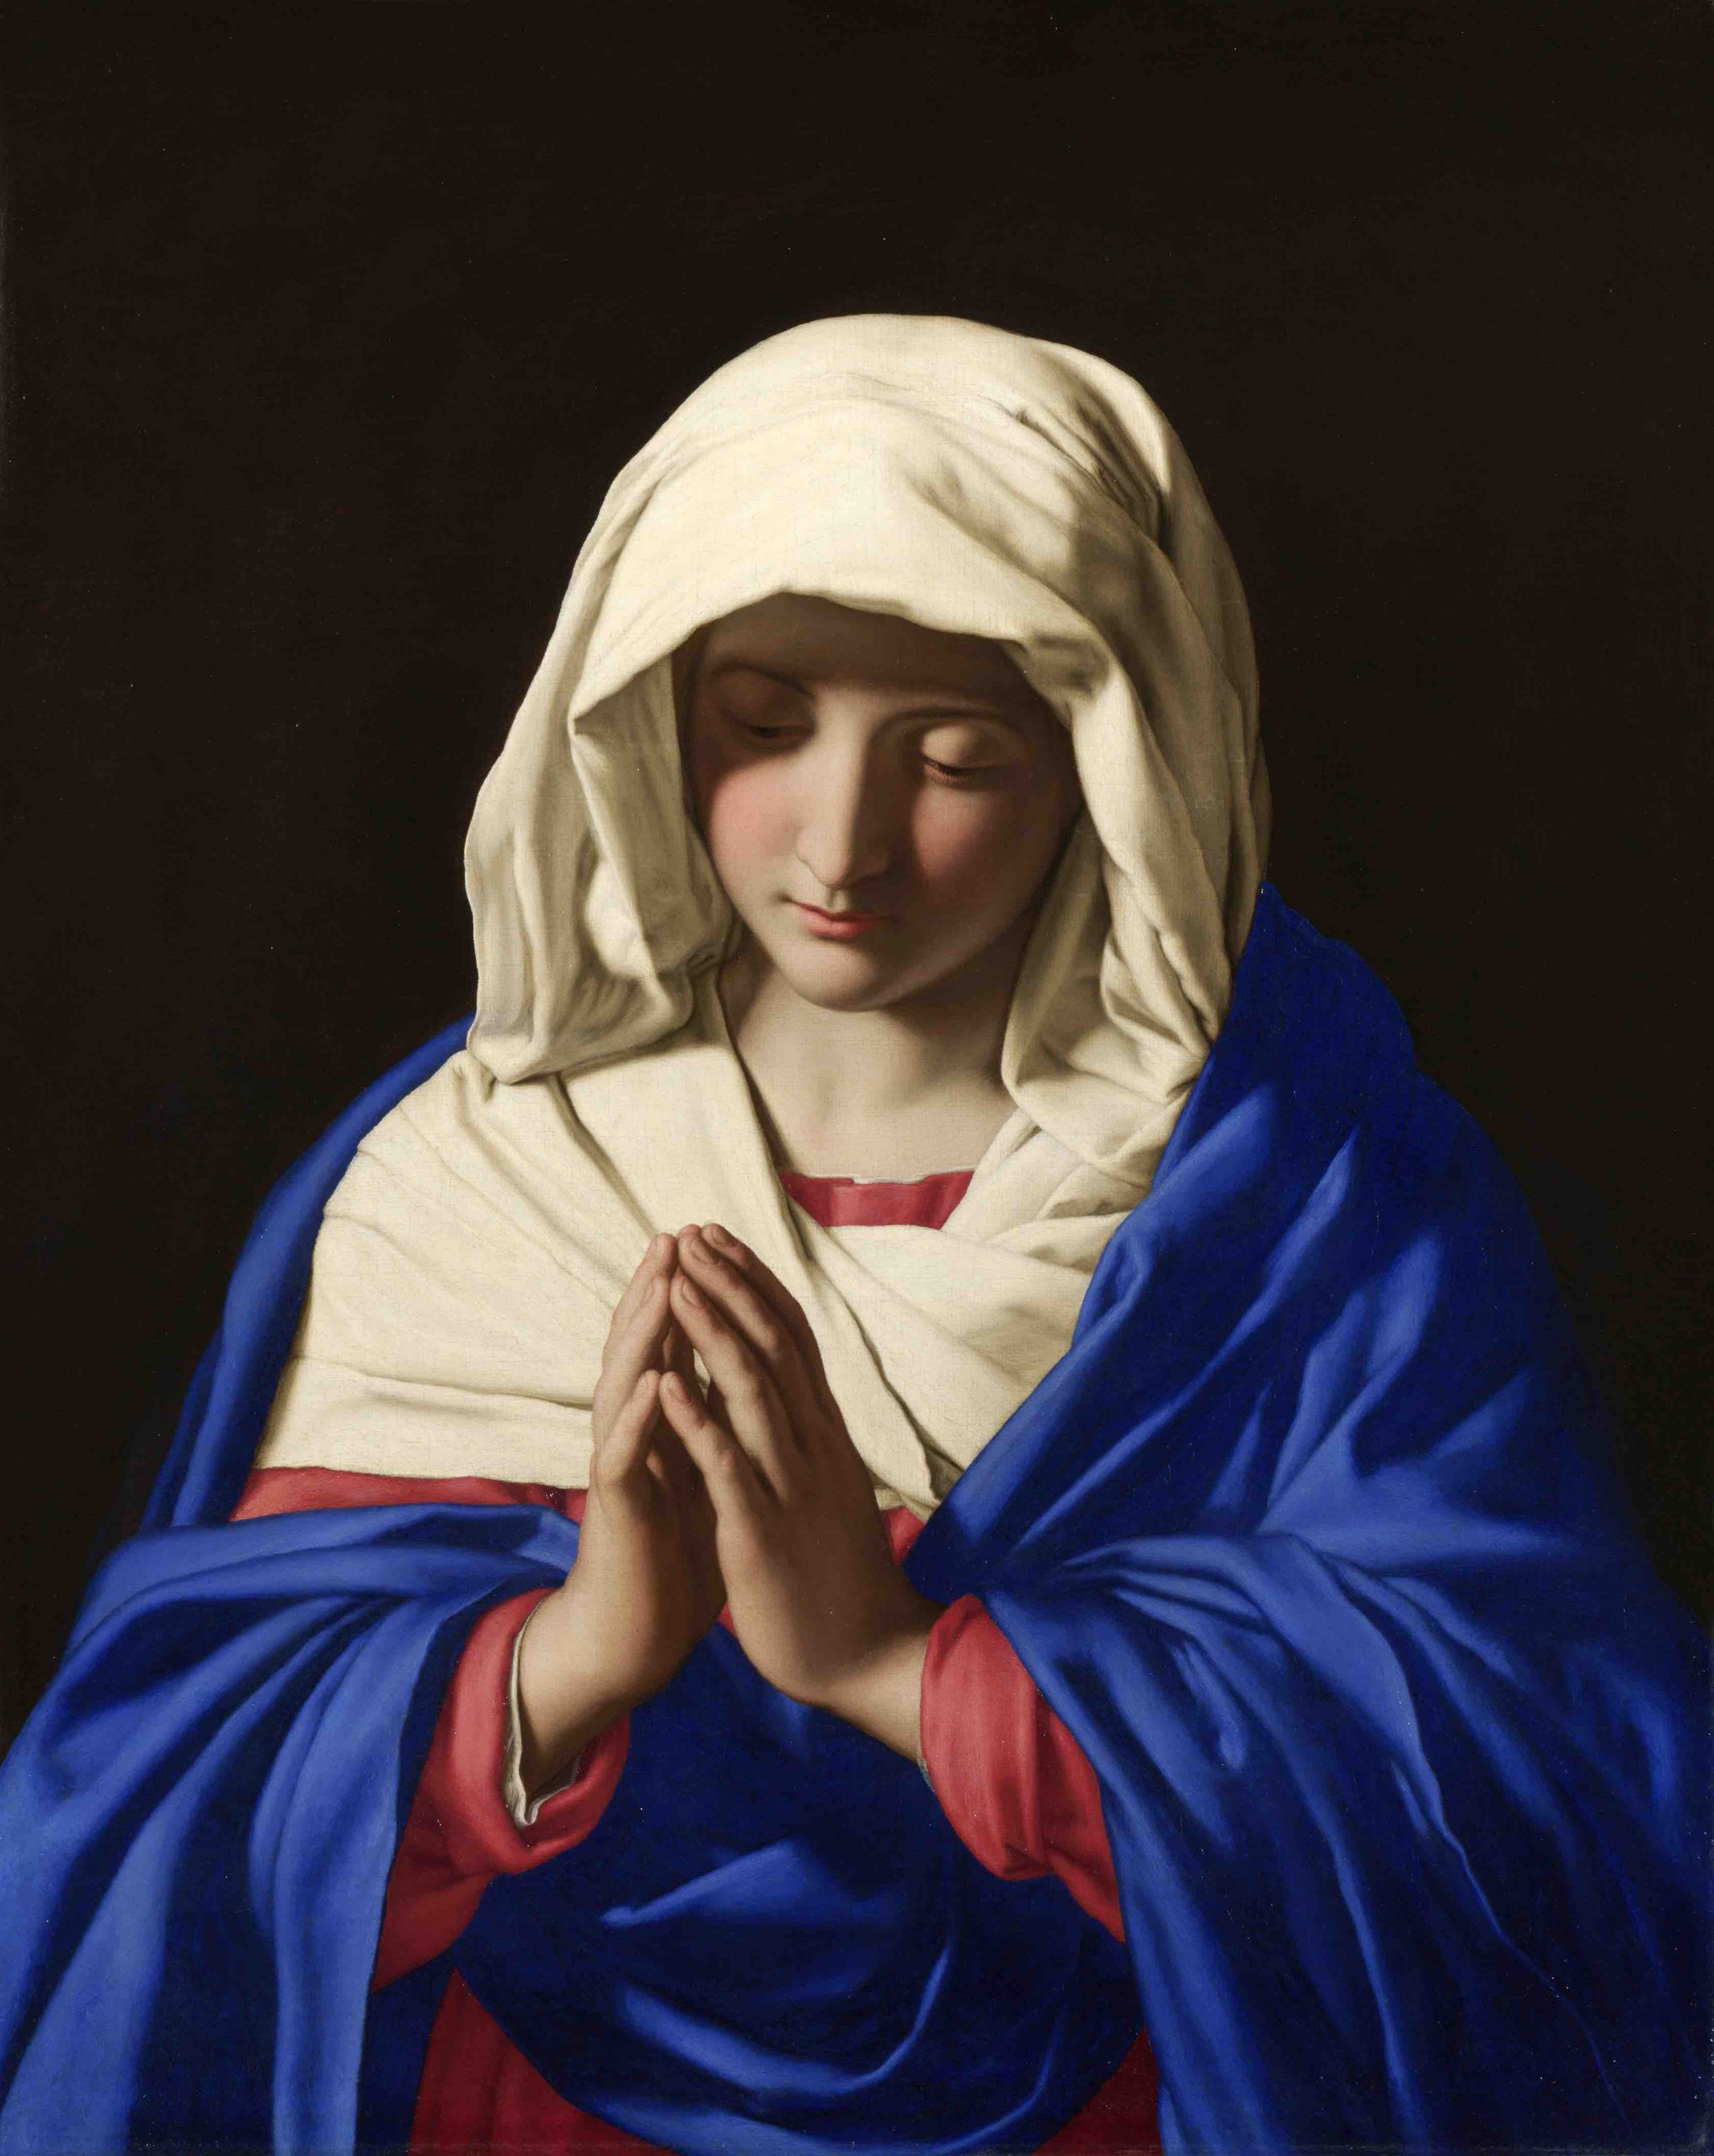 Full title: The Virgin in Prayer Artist: Sassoferrato Date made: 1640-50 Source: https://www.nationalgalleryimages.co.uk/ Contact: picture.library@nationalgallery.co.uk  Copyright © The National Gallery, London